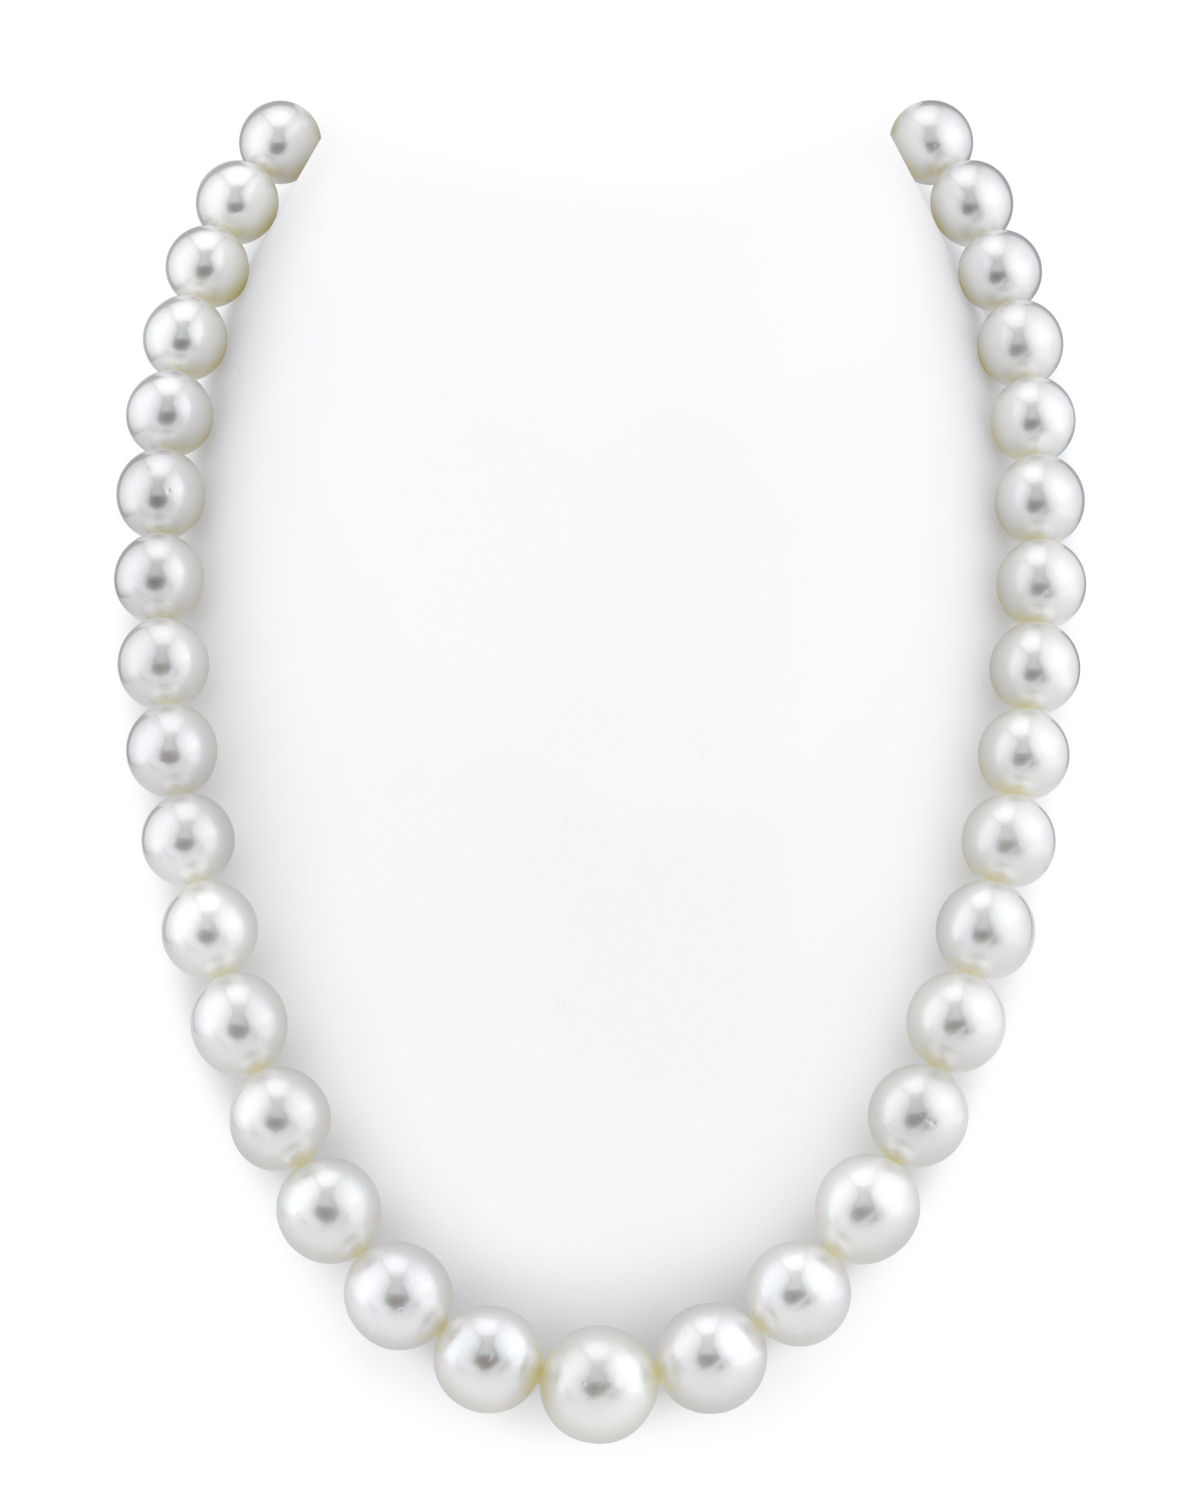 10-12mm White South Sea Pearl Necklace - AAA Quality